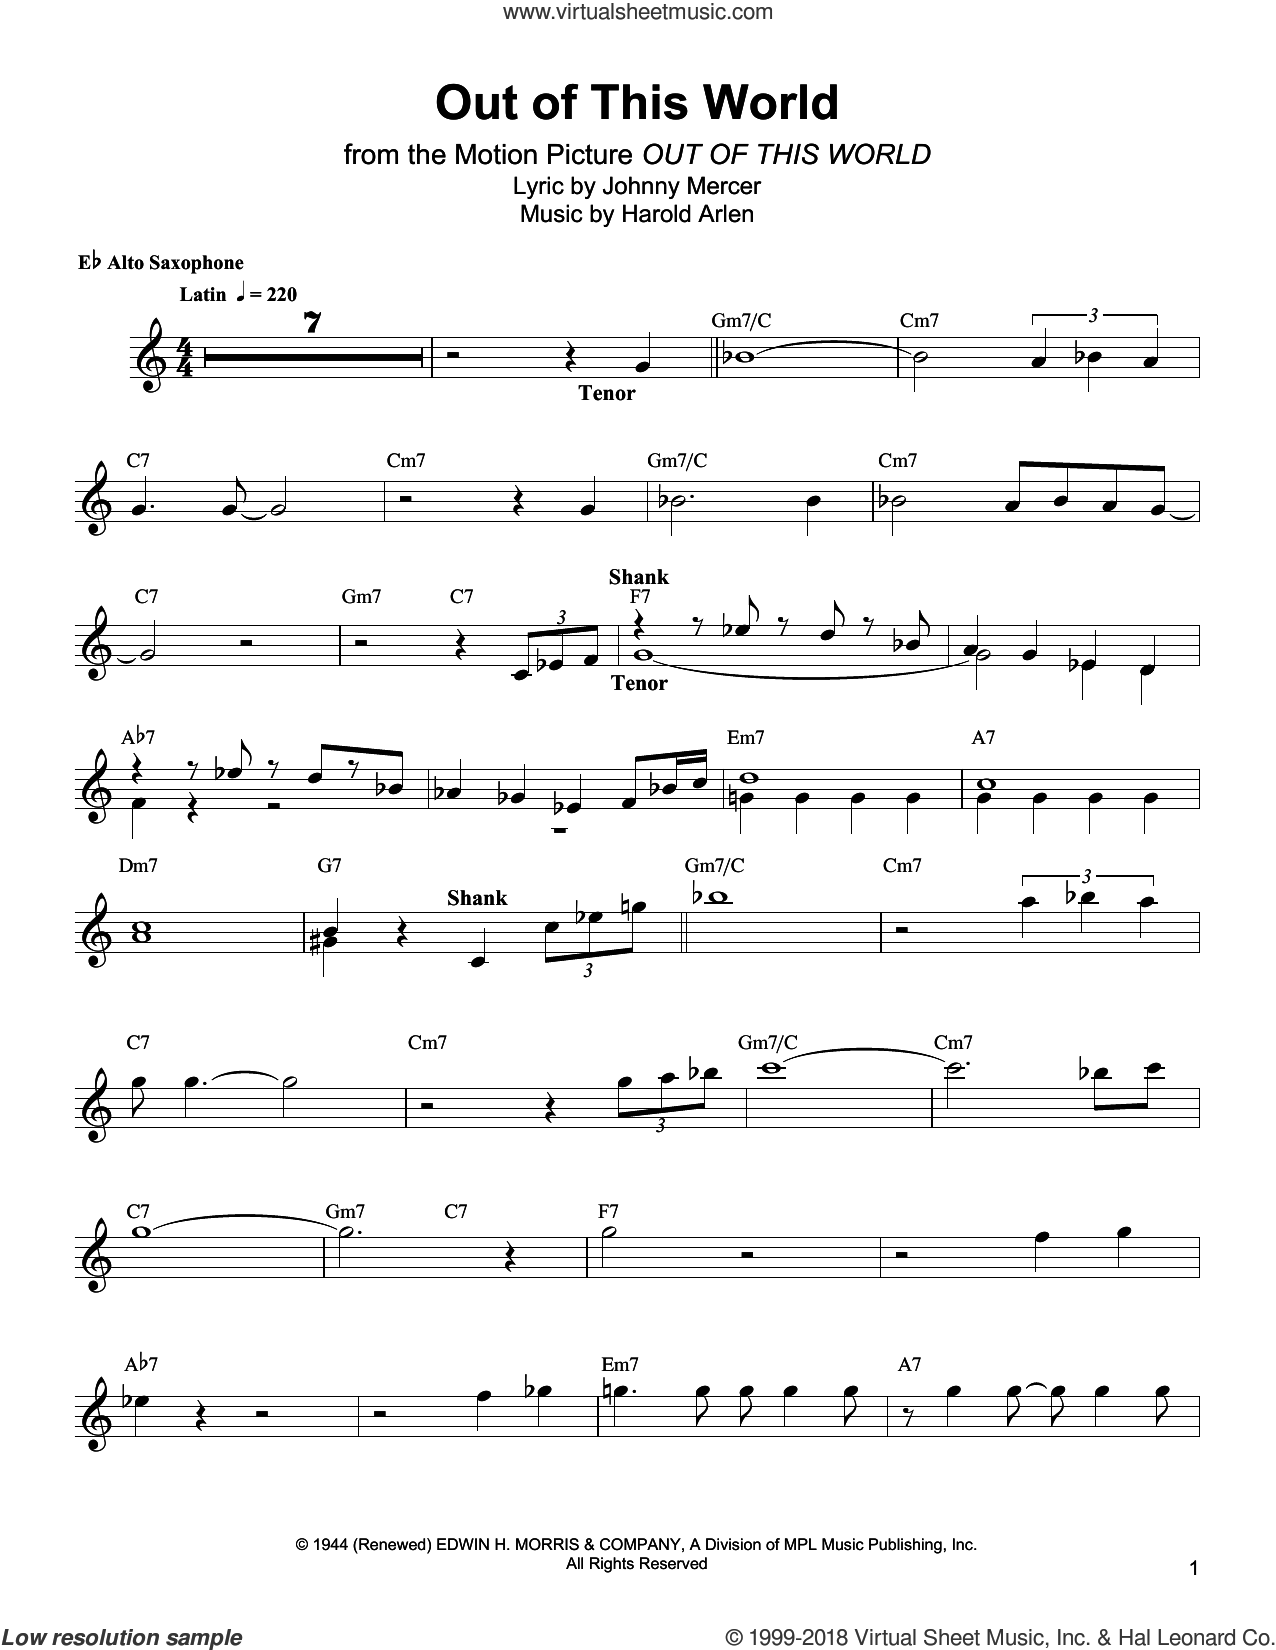 Out Of This World sheet music for alto saxophone (transcription) by Bud Shank, Harold Arlen and Johnny Mercer, intermediate skill level